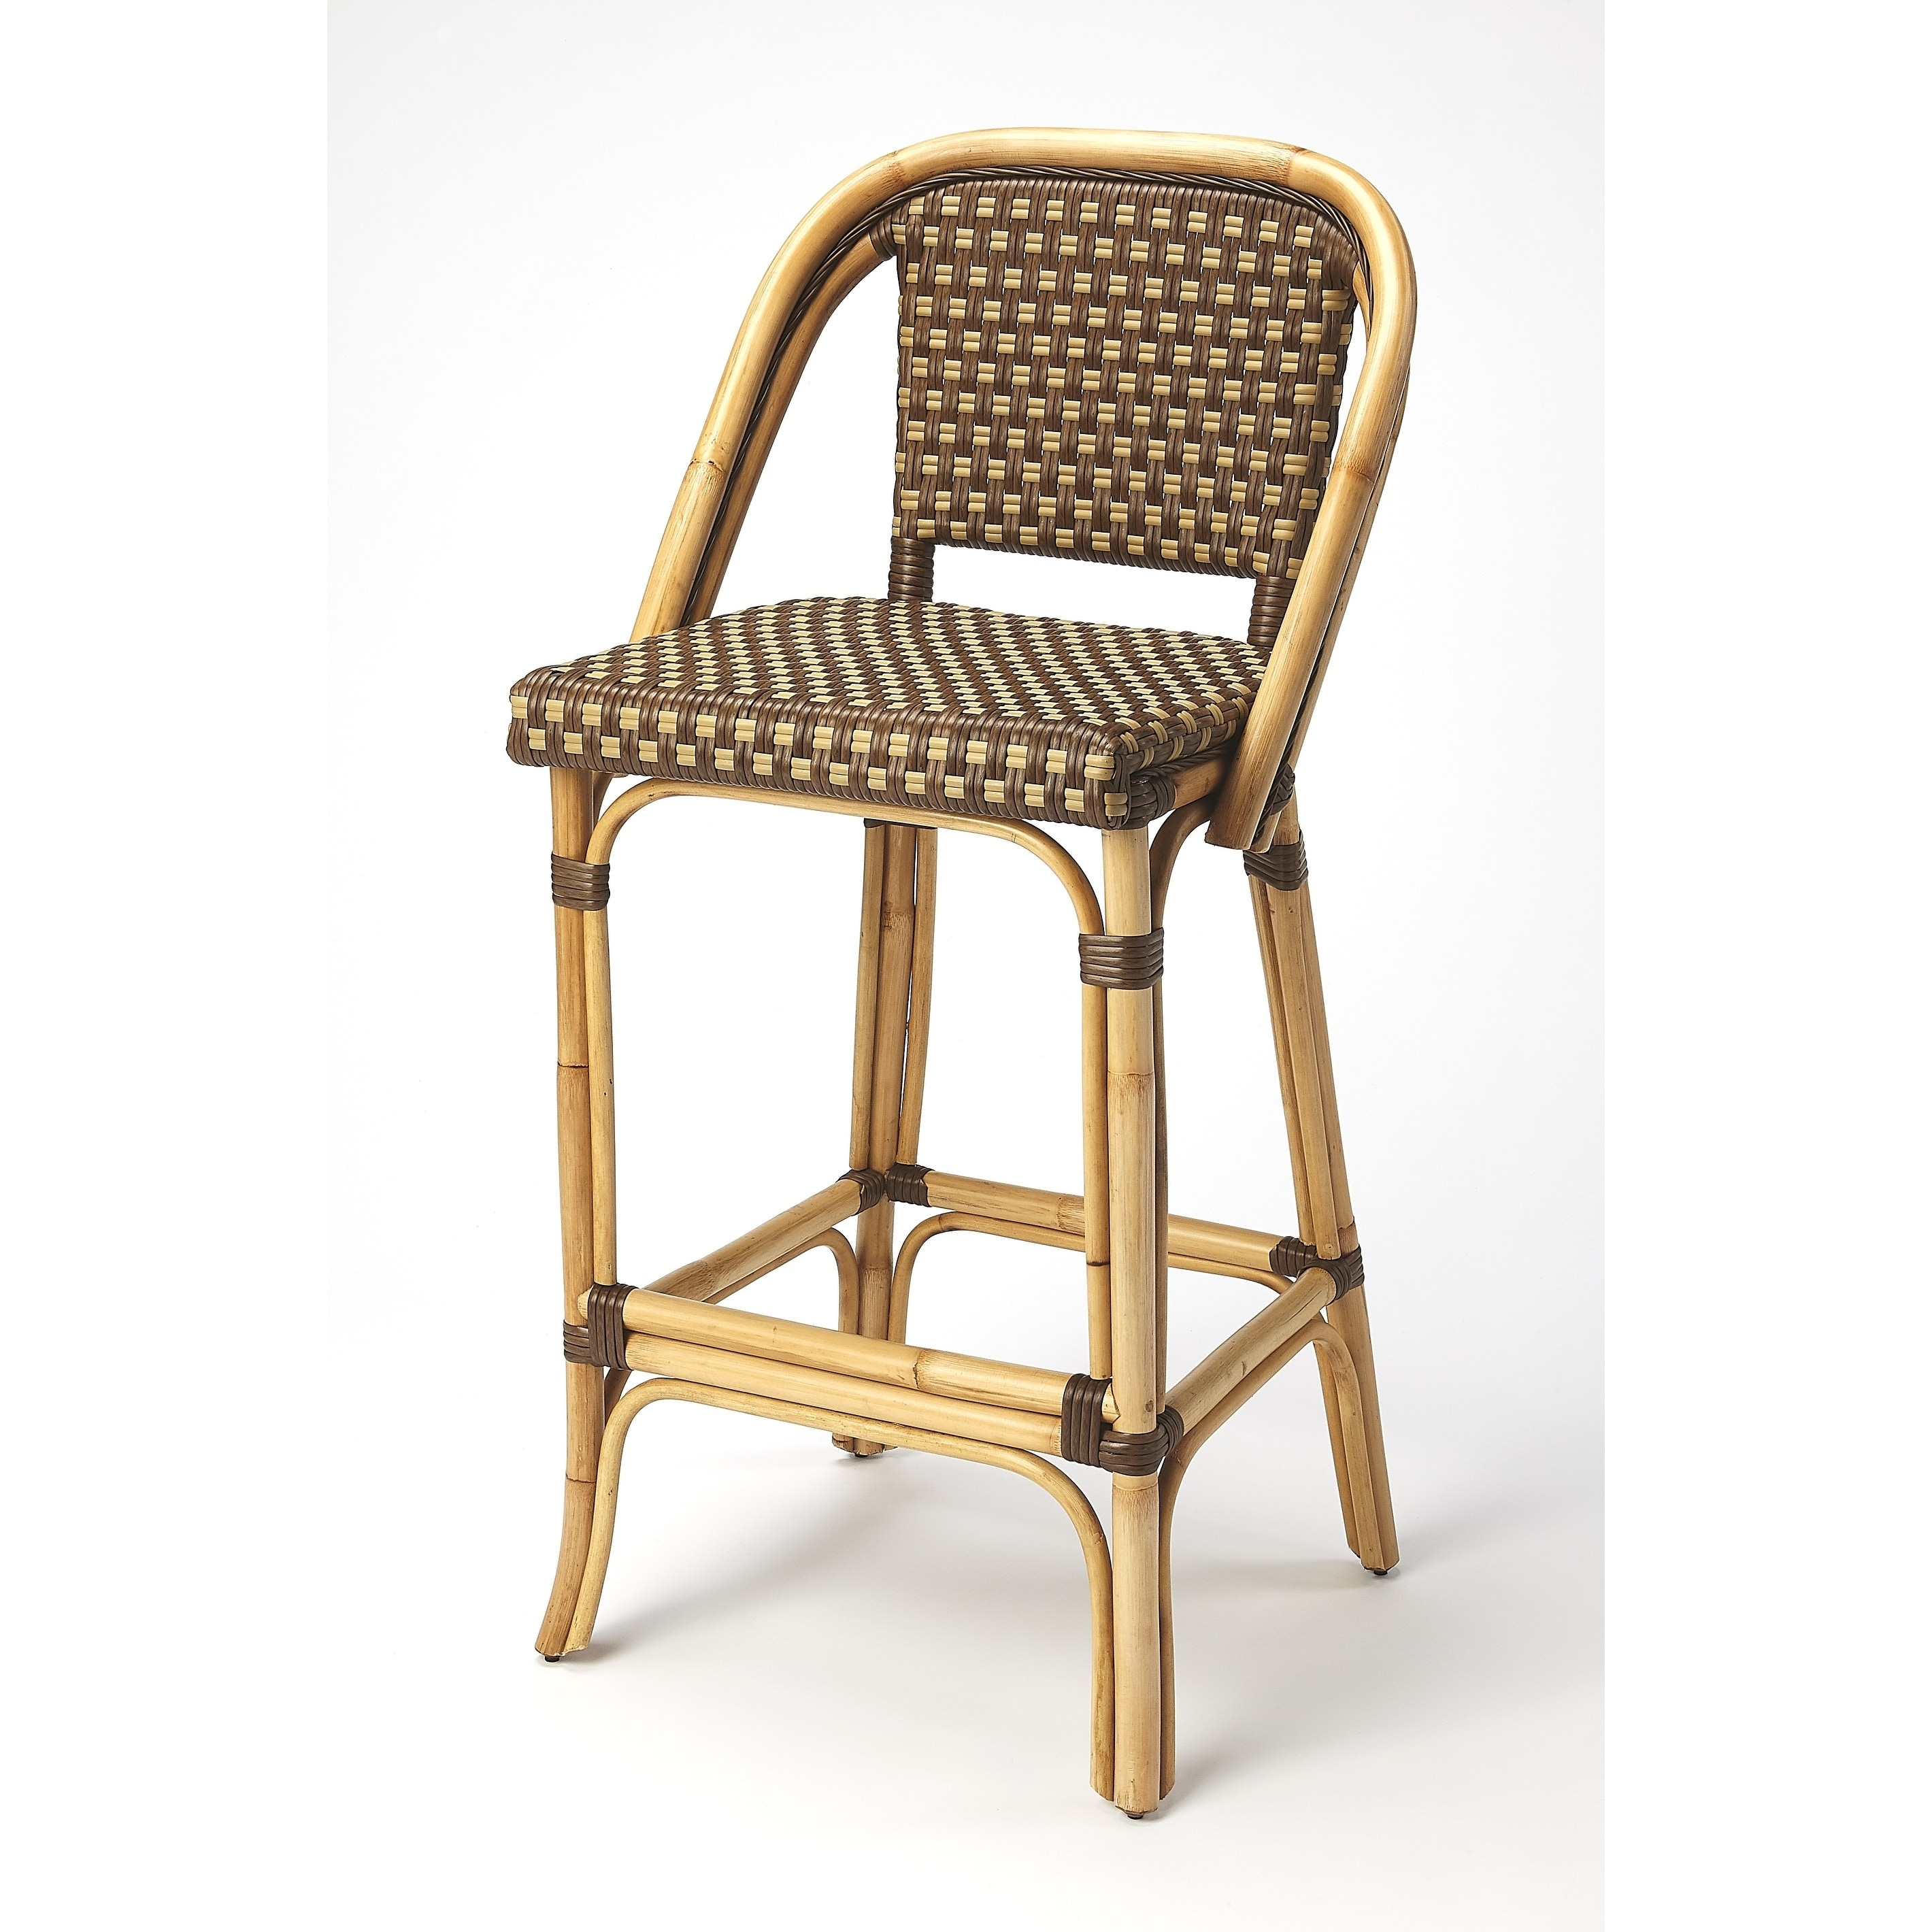 Terrific Buy Rattan Counter Bar Stools Online At Overstock Our Evergreenethics Interior Chair Design Evergreenethicsorg